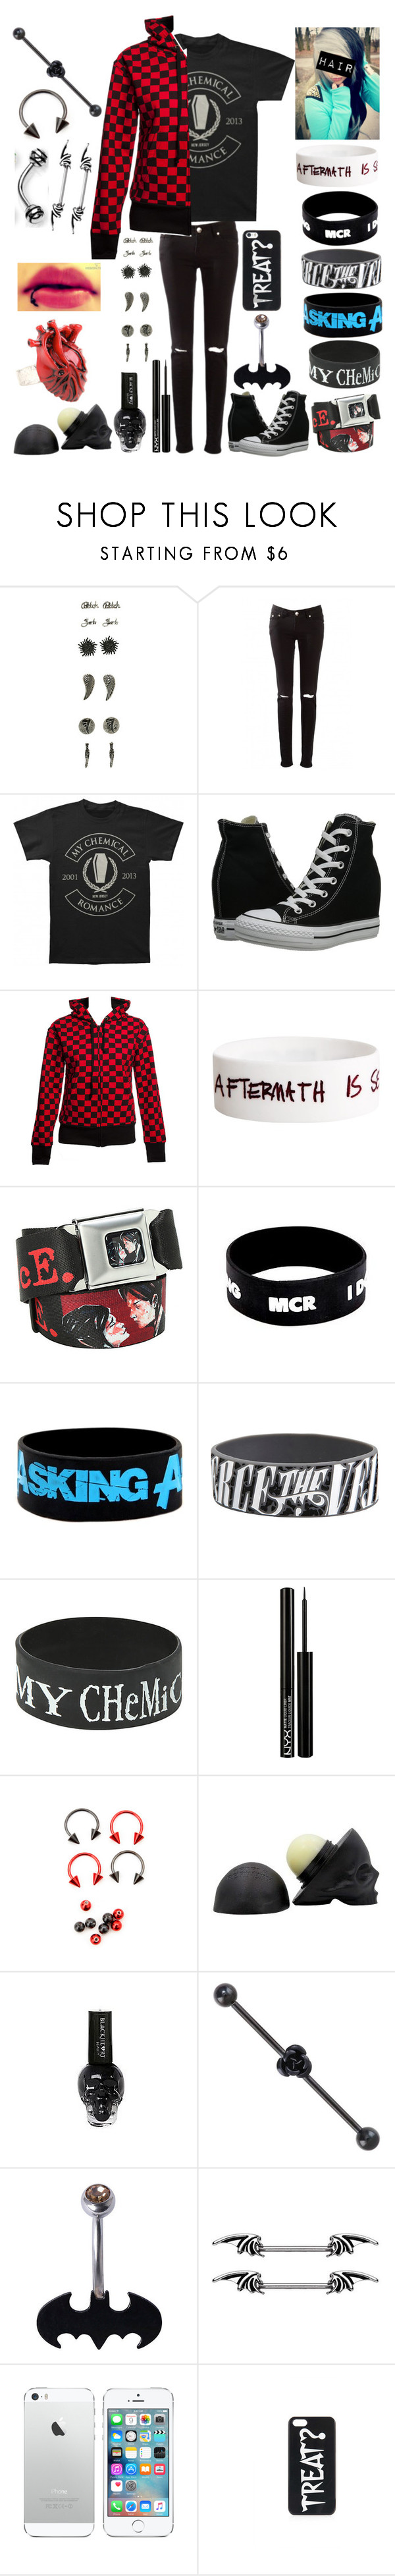 """Style #275"" by katlanacross ❤ liked on Polyvore featuring Converse, NYX, Topshop, women's clothing, women, female, woman, misses and juniors"